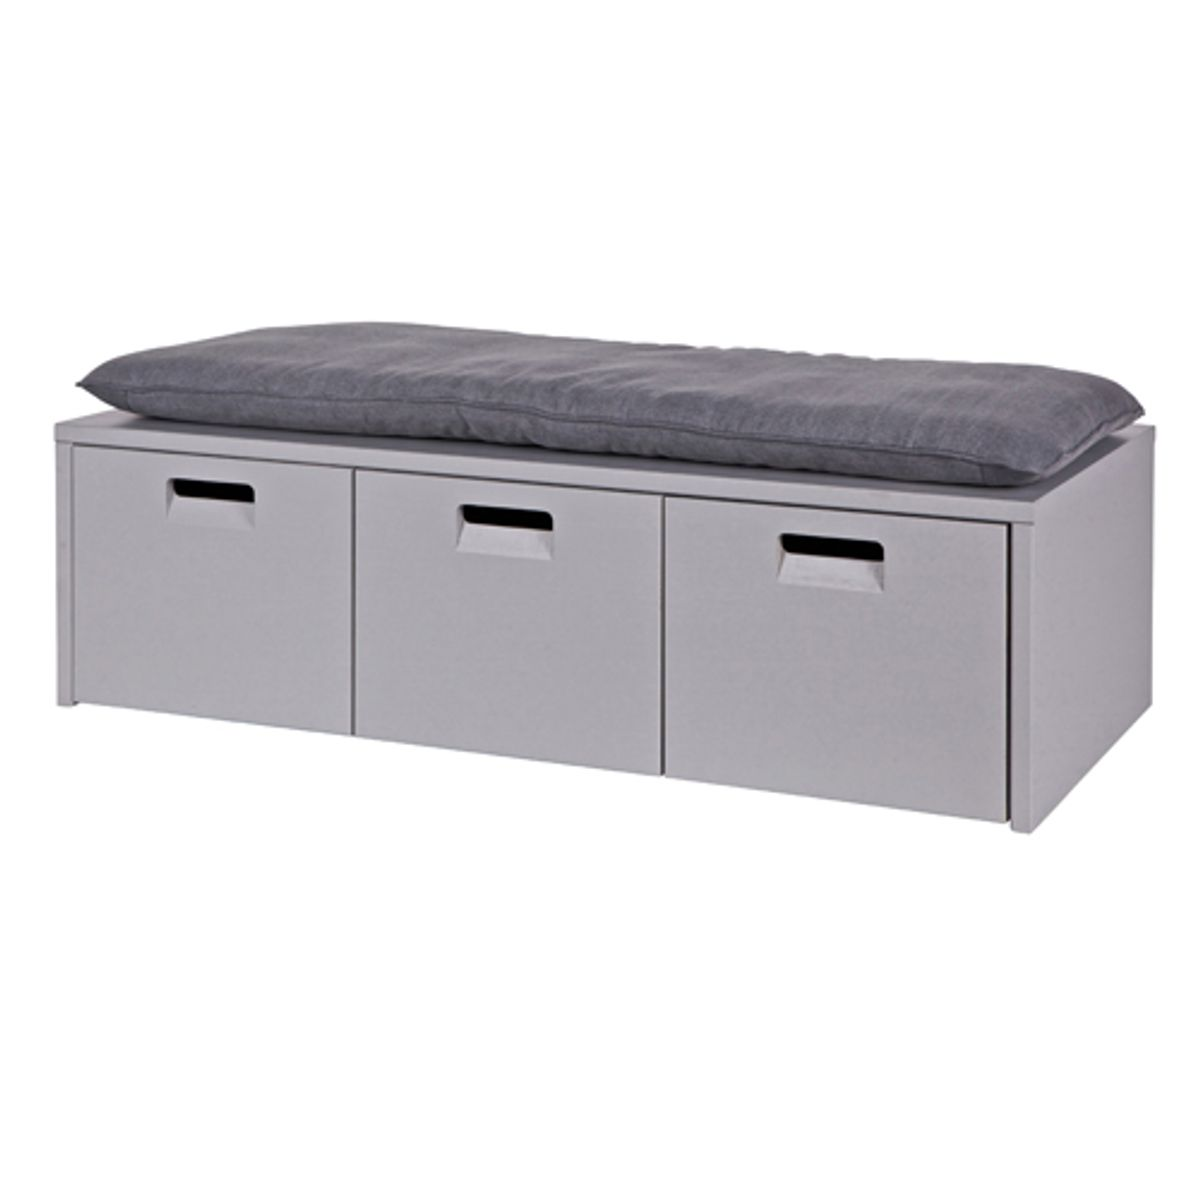 banc en pin gris coffre de rangement 3 tiroirs arthur decoclico. Black Bedroom Furniture Sets. Home Design Ideas